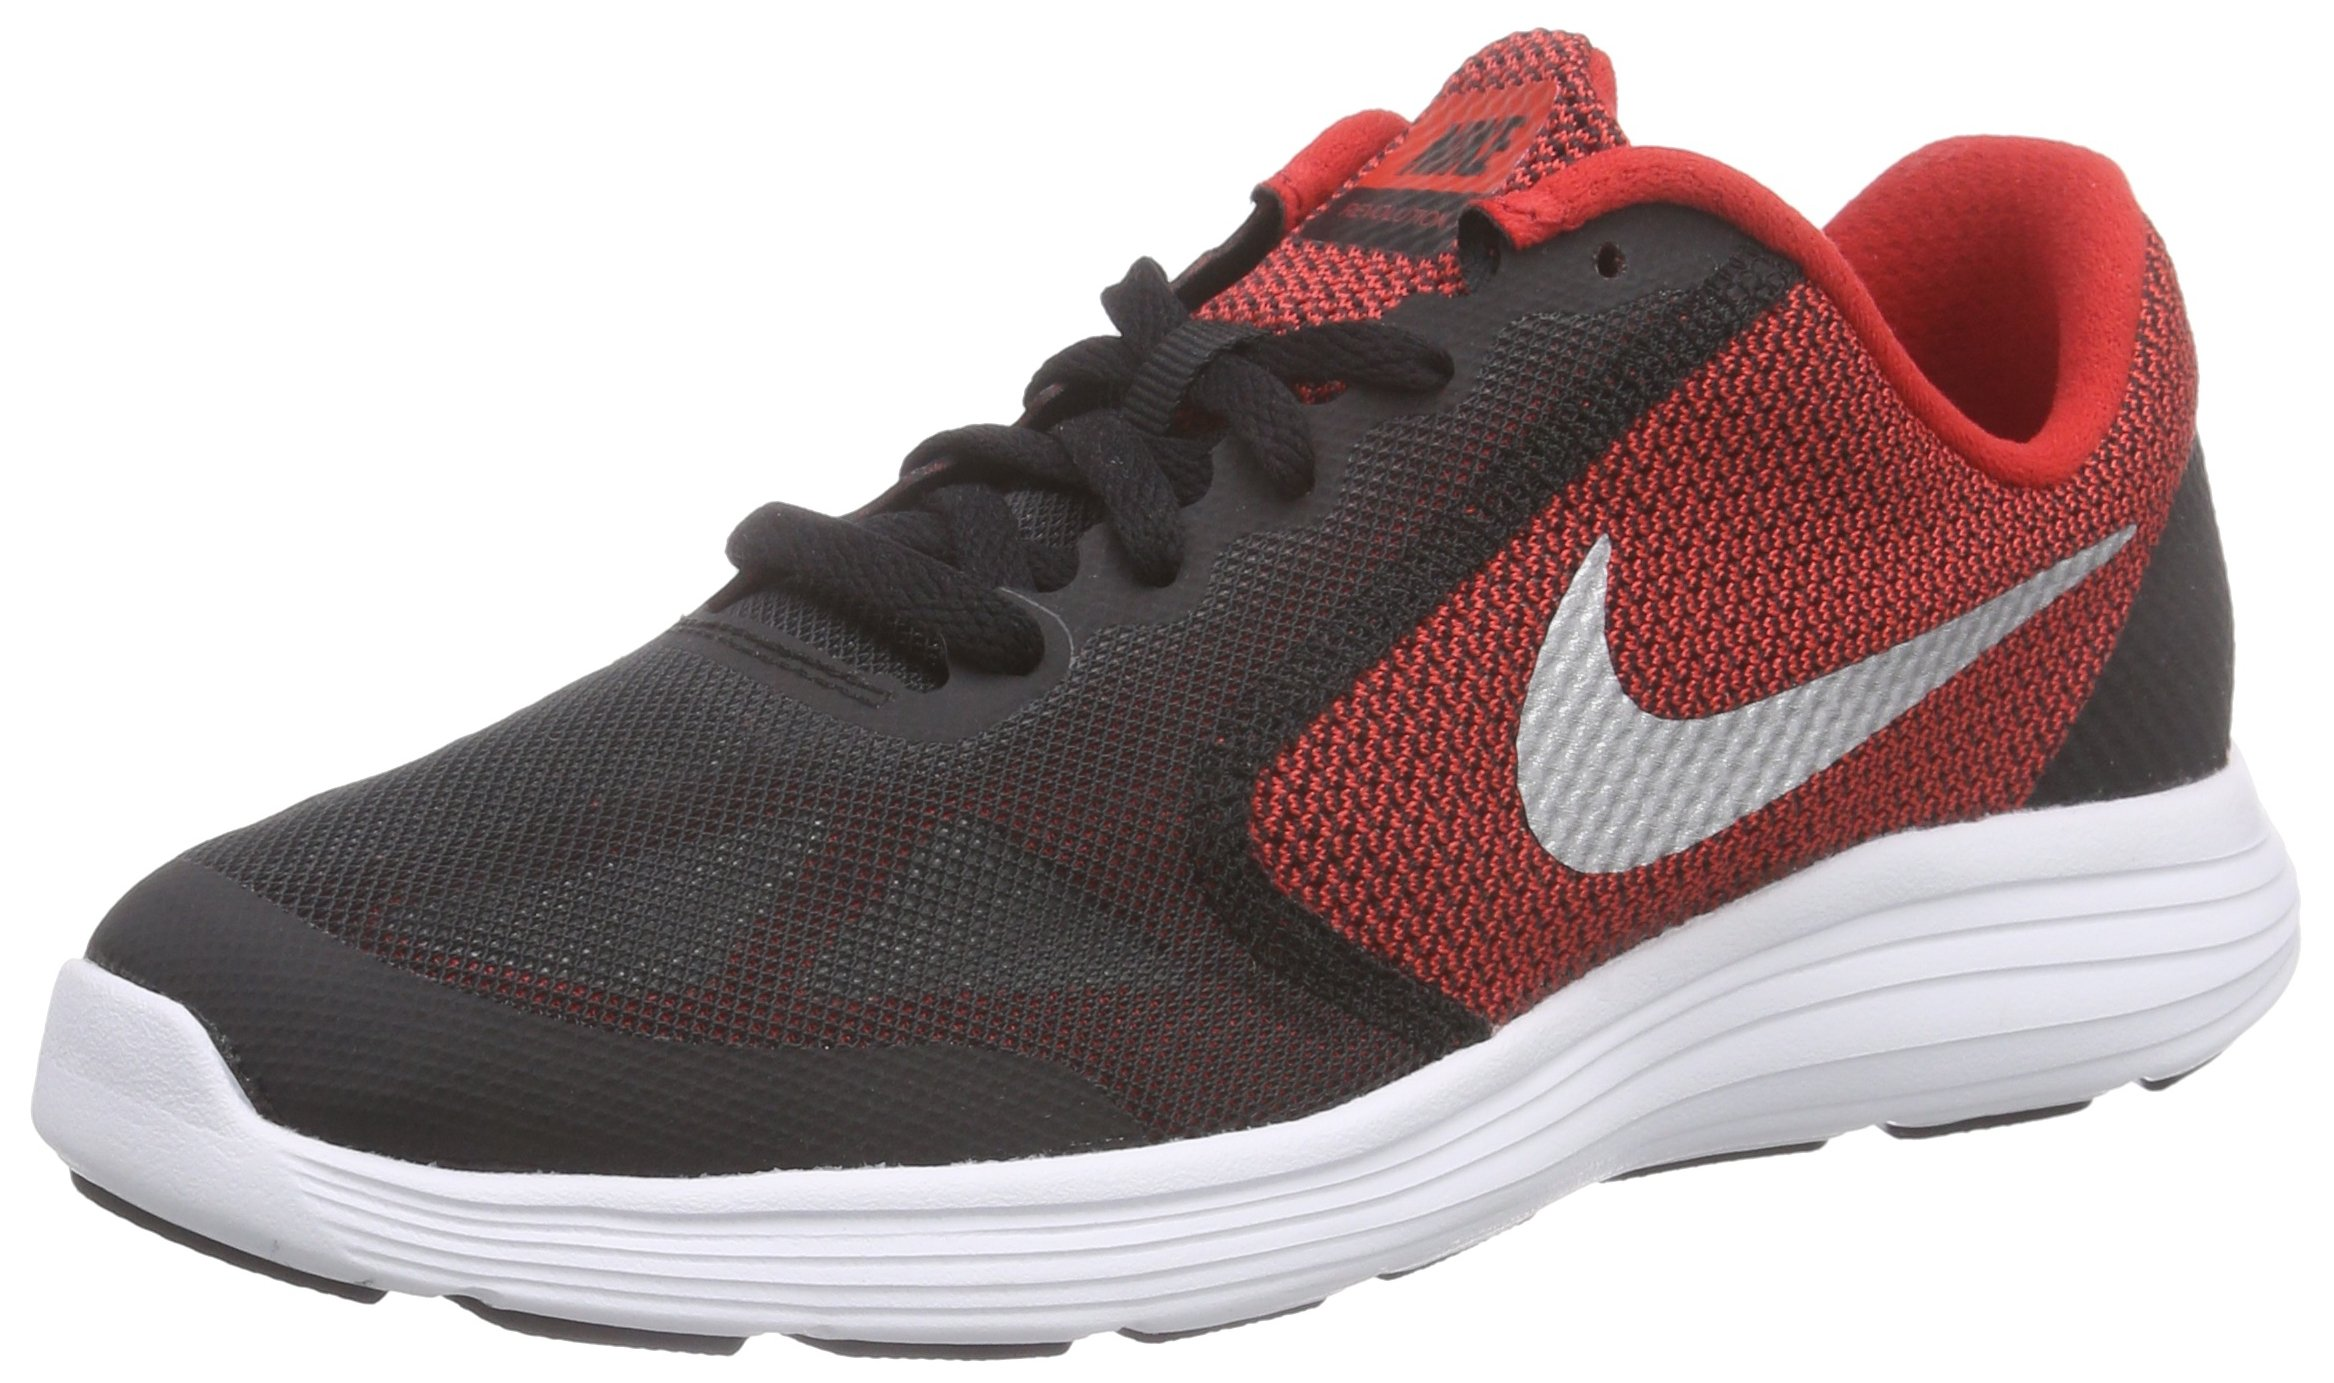 NIKE Boys' Revolution 3 Running Shoe (GS), University Red/Metallic Silver/Black, 4.5 M US Big Kid